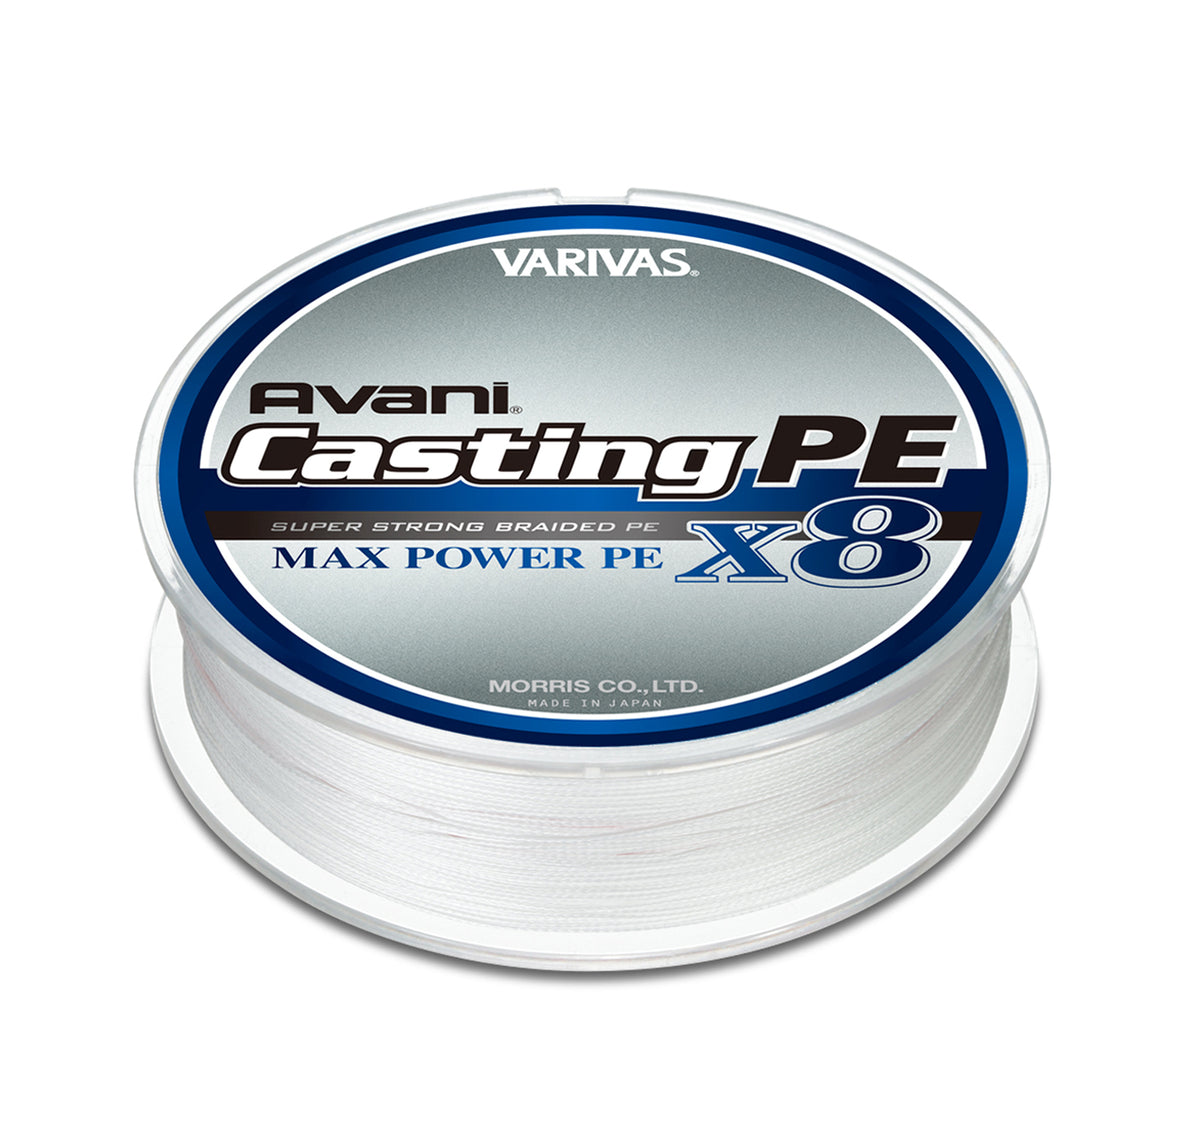 Varivas Avani Casting PE Max Power X8 Braid 300m